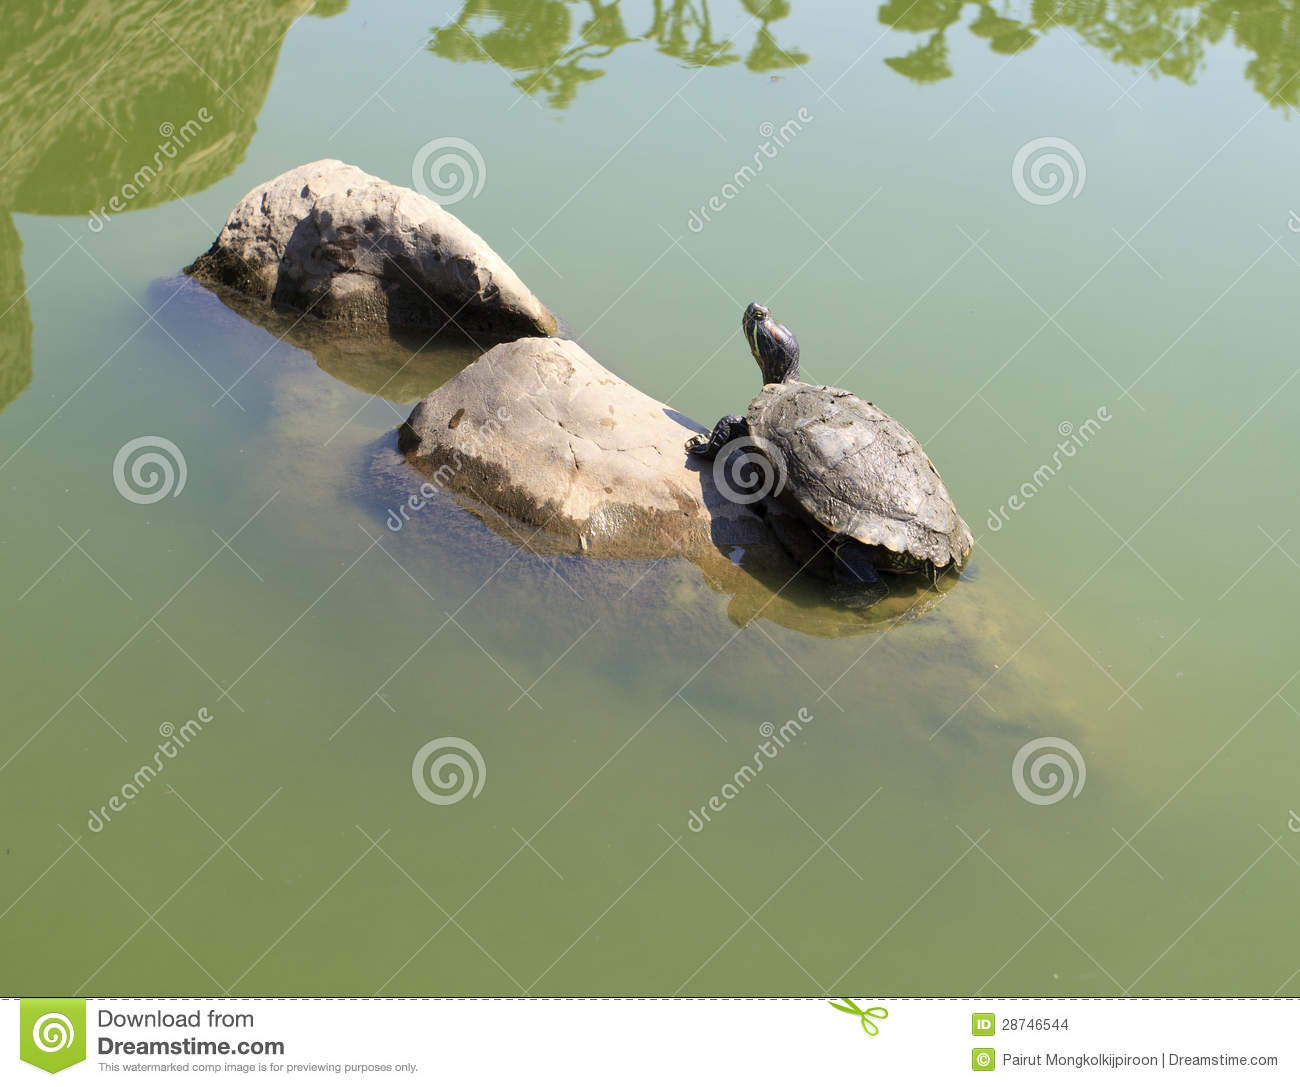 Turtles Basking On The Rocks Stock Images - Image: 28746544